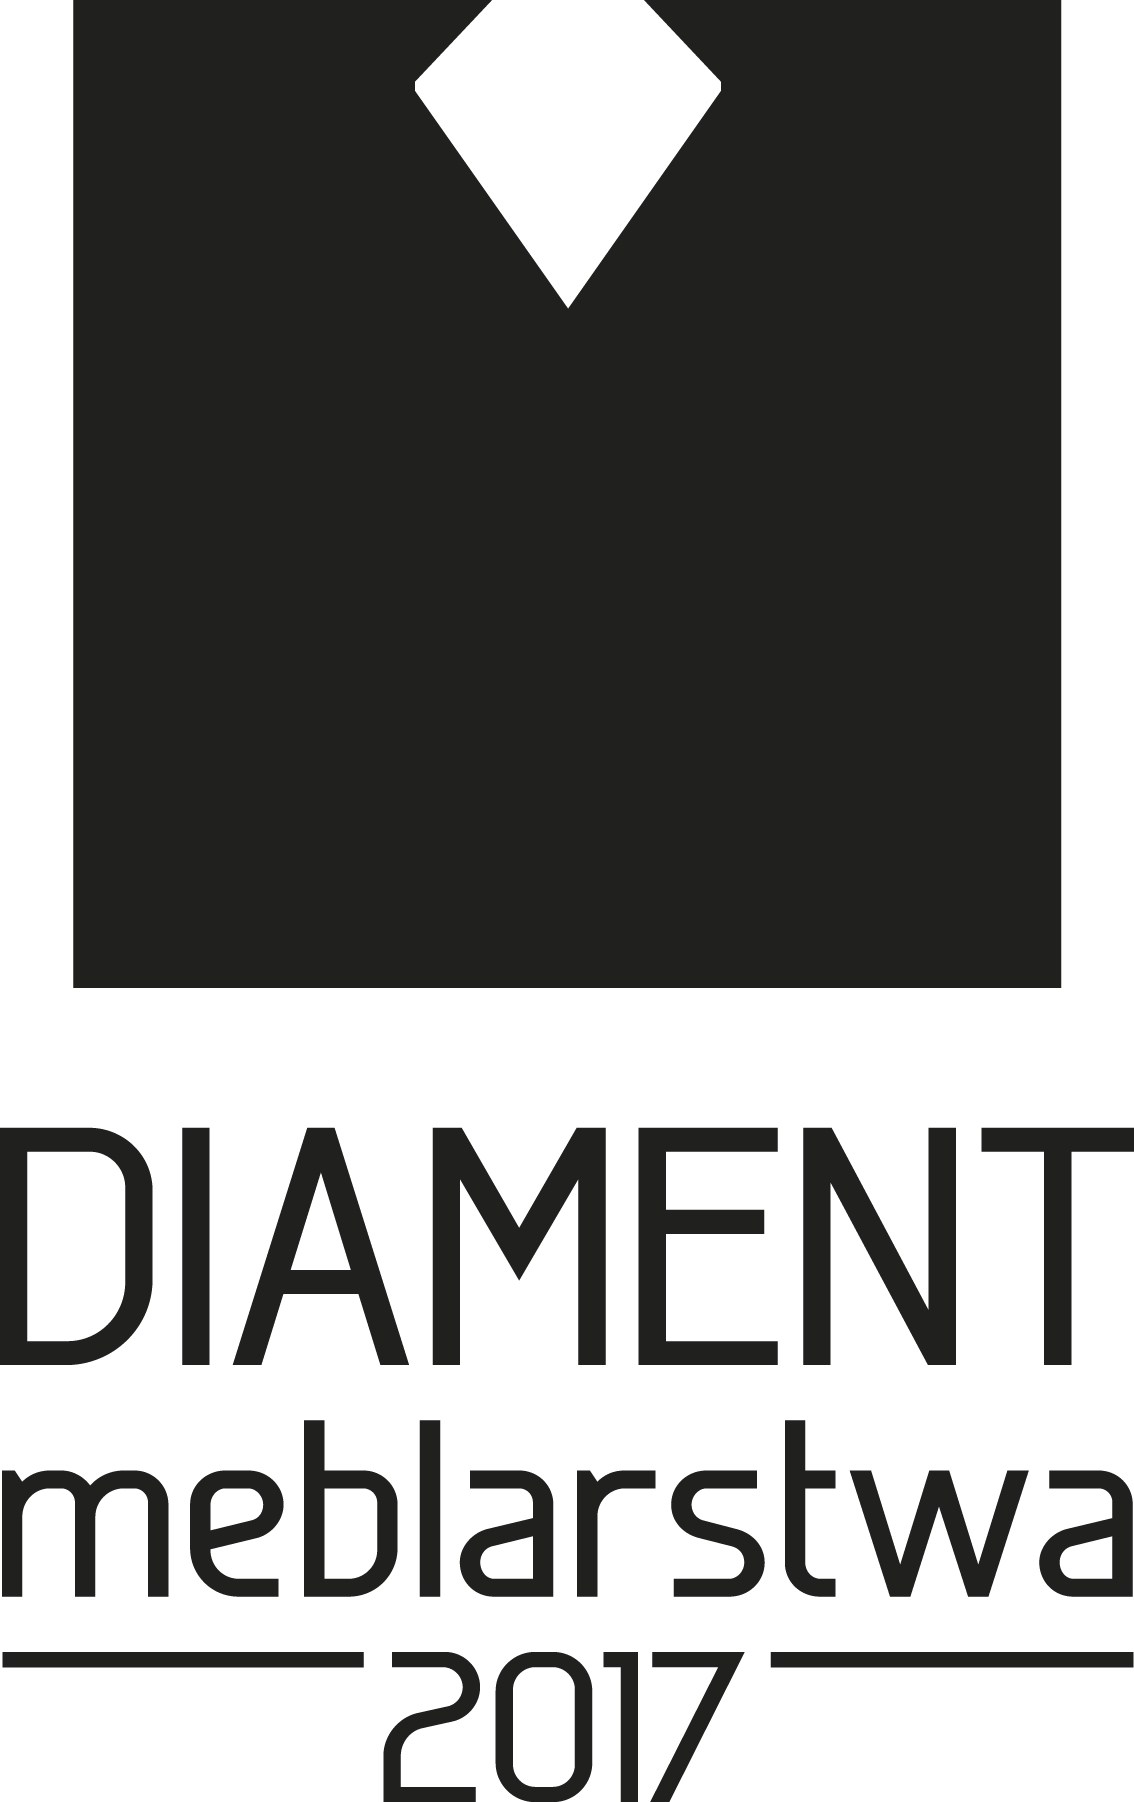 Diament Meblarstwa 2017 dla kolekcji Possi Light Black Red White